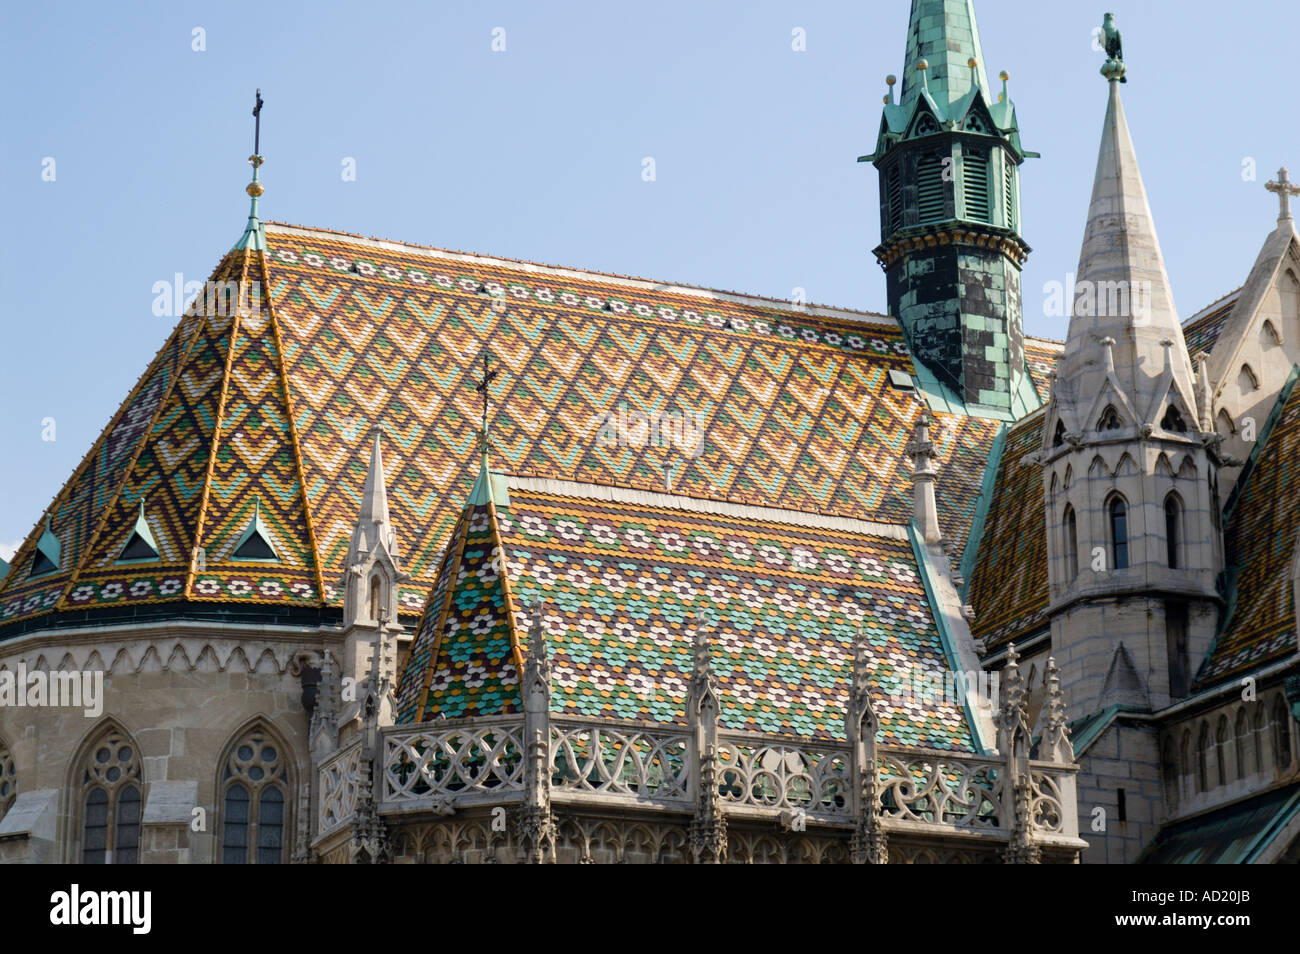 Budapest Hungary Matyas Church Roof Tiles